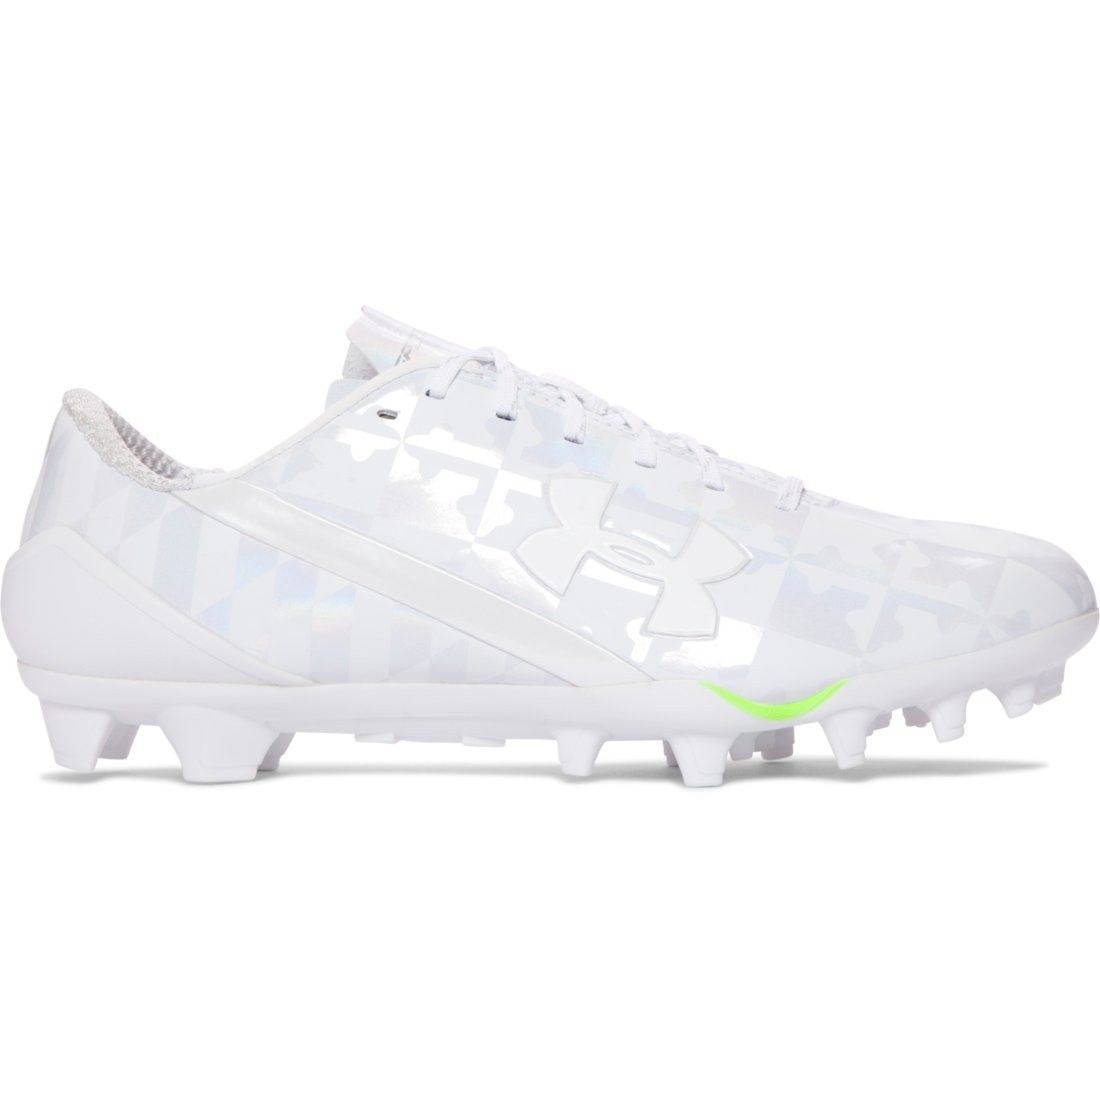 2439e7725ce5 Under Armour Spotlight Lacrosse Cleat in White Icy Diamond synthetic upper  offers superior fit and stability Seamlessly molded heel cup for a precise  feel, ...